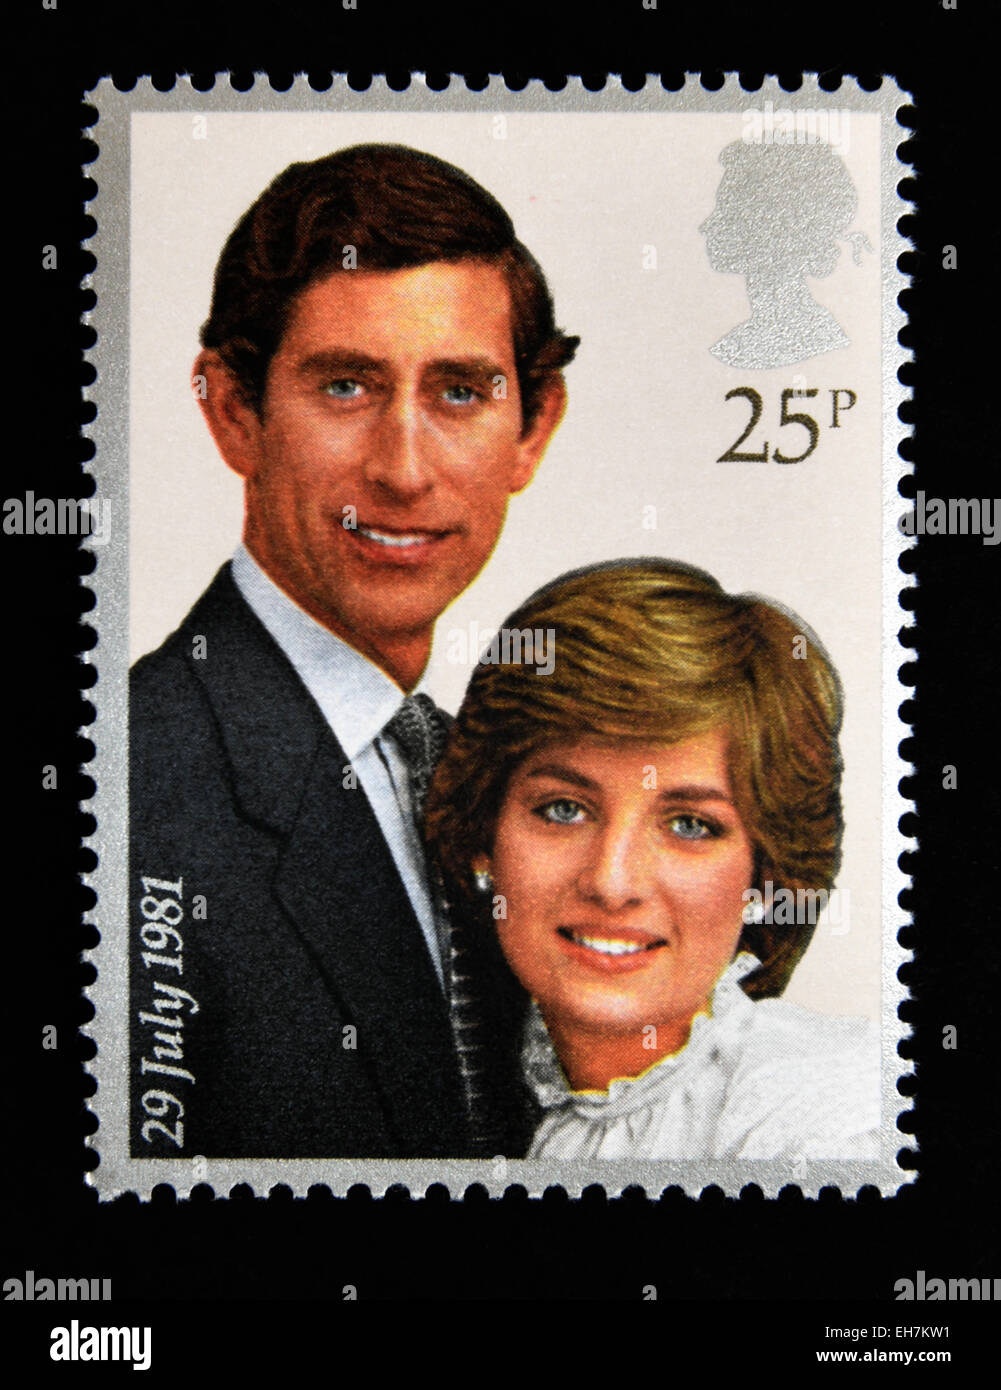 Postage stamp. Great Britain. Queen Elizabeth II. 1981.Royal Wedding,  29th.July 1981. Prince Charles and Lady Diana Spencer. 25p